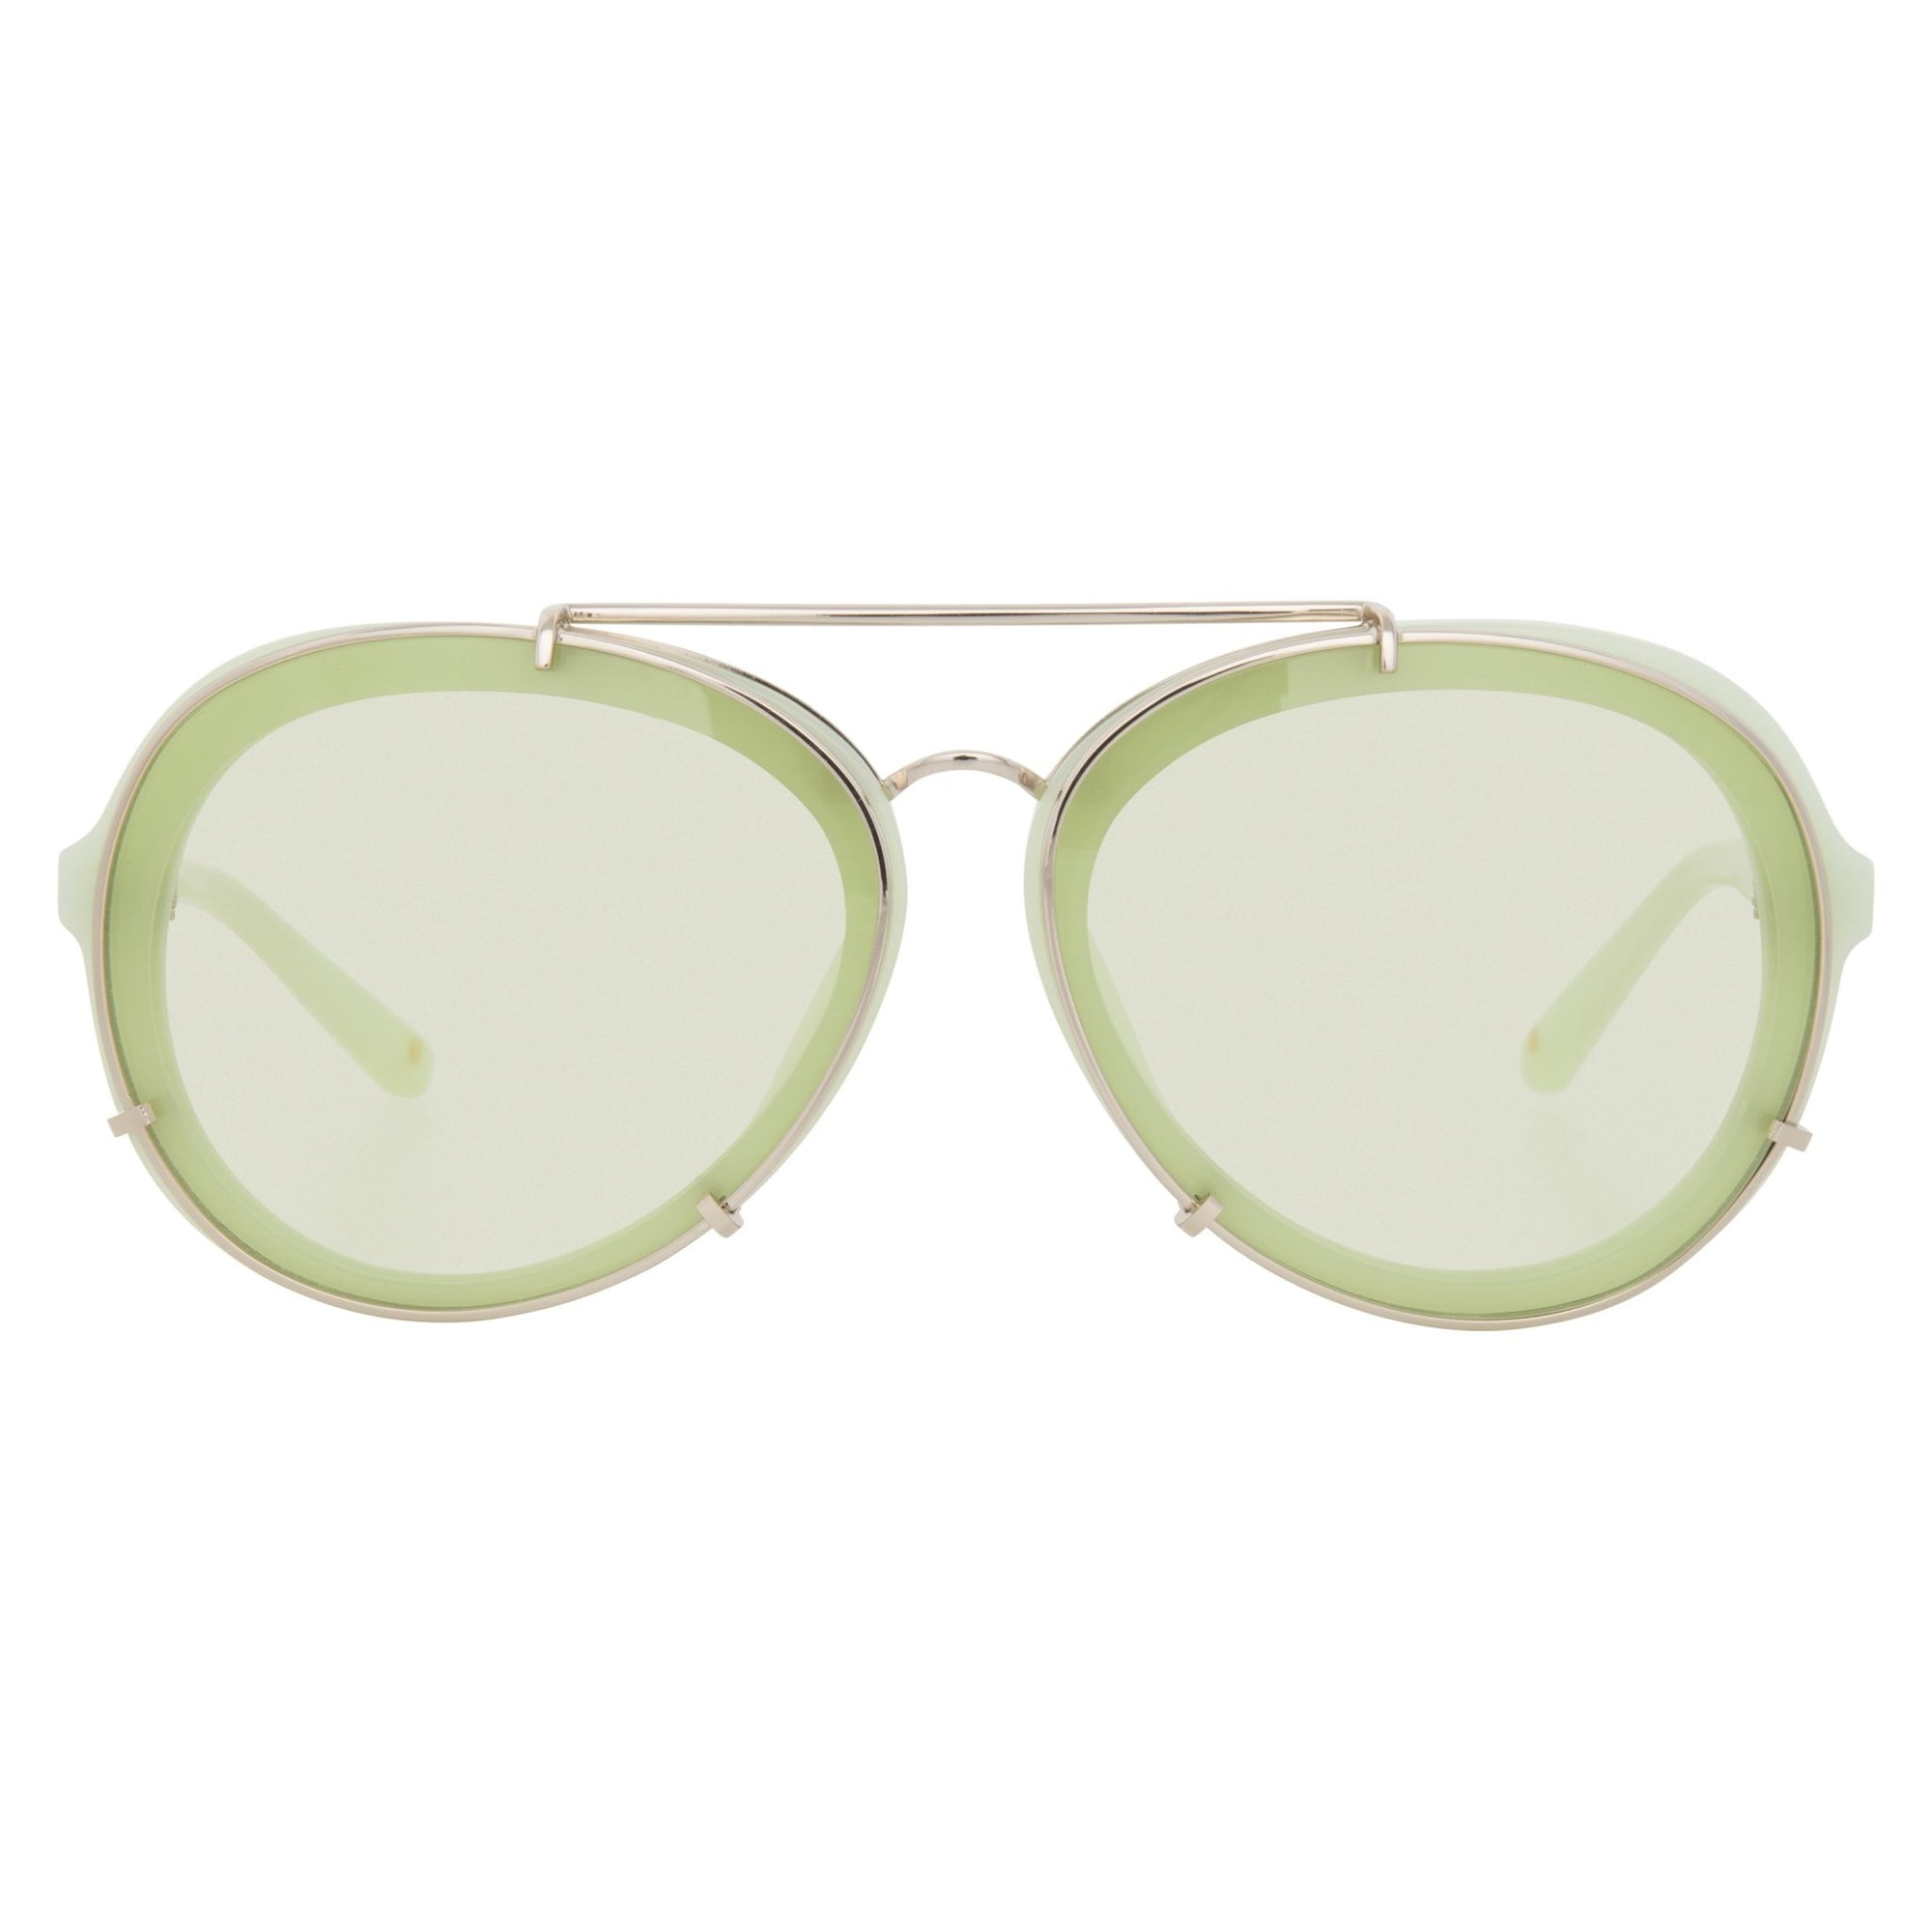 Phillip Lim Sunglasses Light Green and Gold Aviator with Light Green Lenses Category 1 - PL170C2SUN - Watches & Crystals